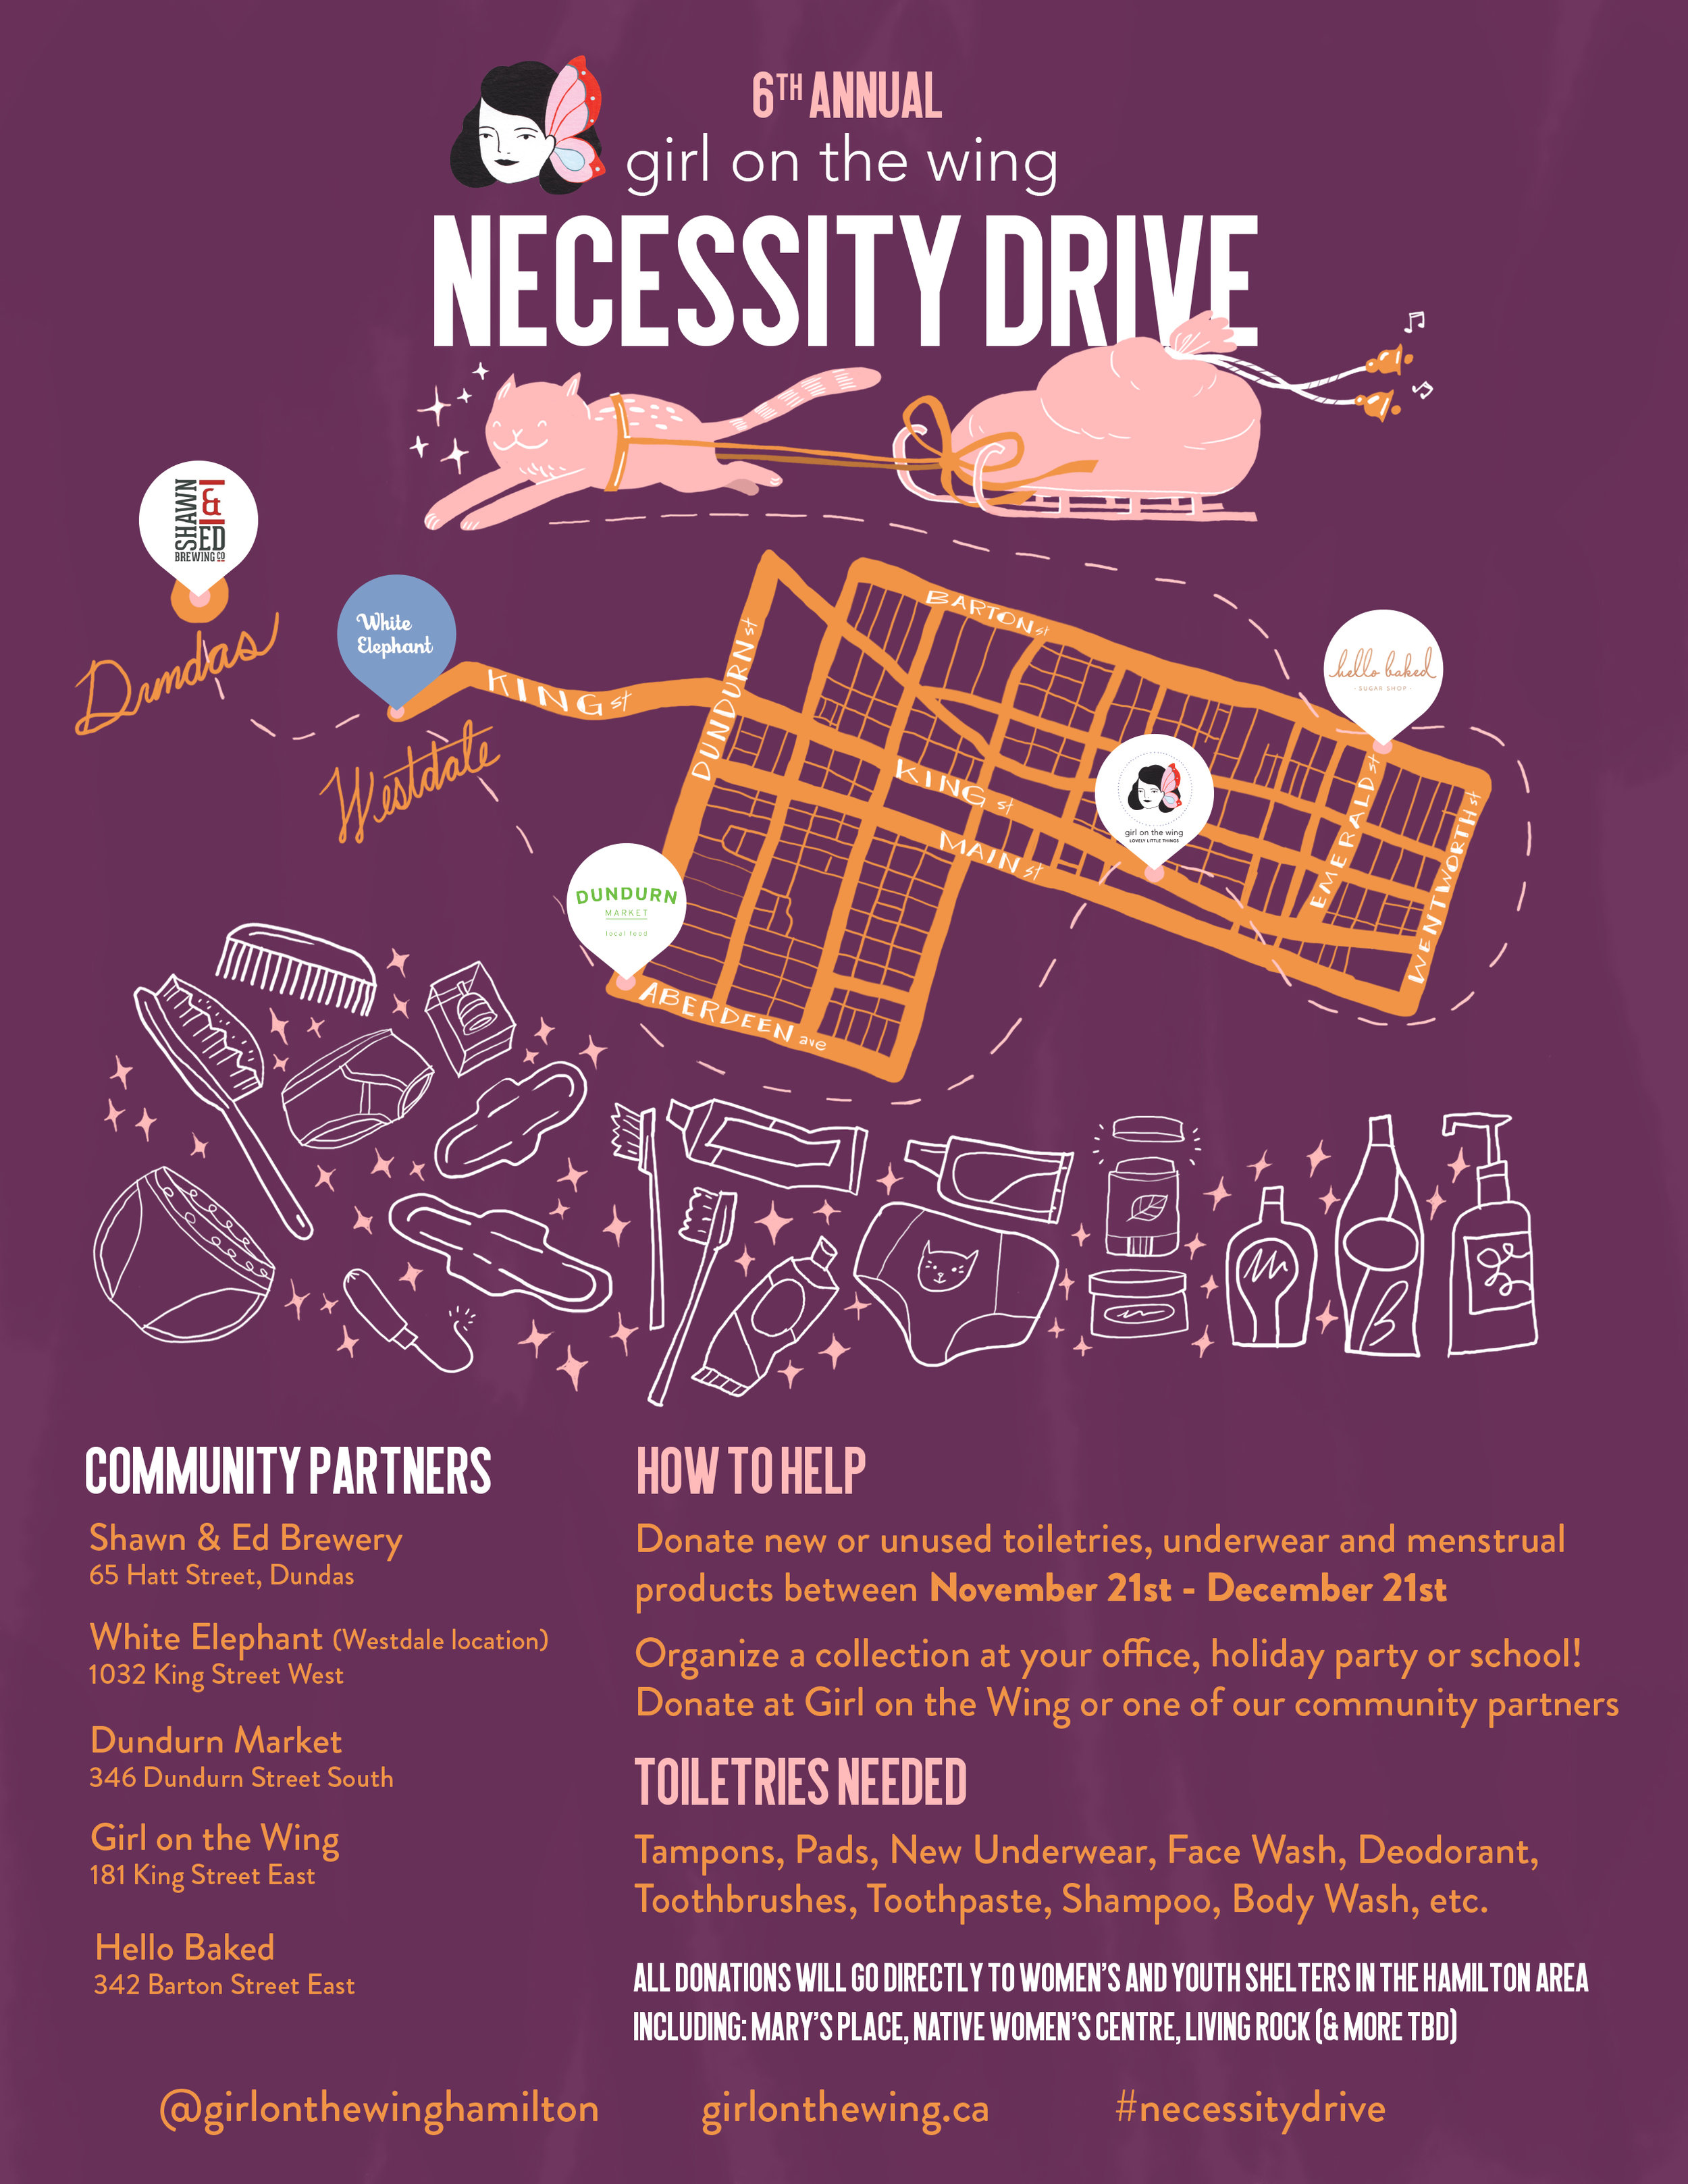 Poster for Necessity Drive, an annual charity initiative organized by Hamilton boutique Girl on the Wing.